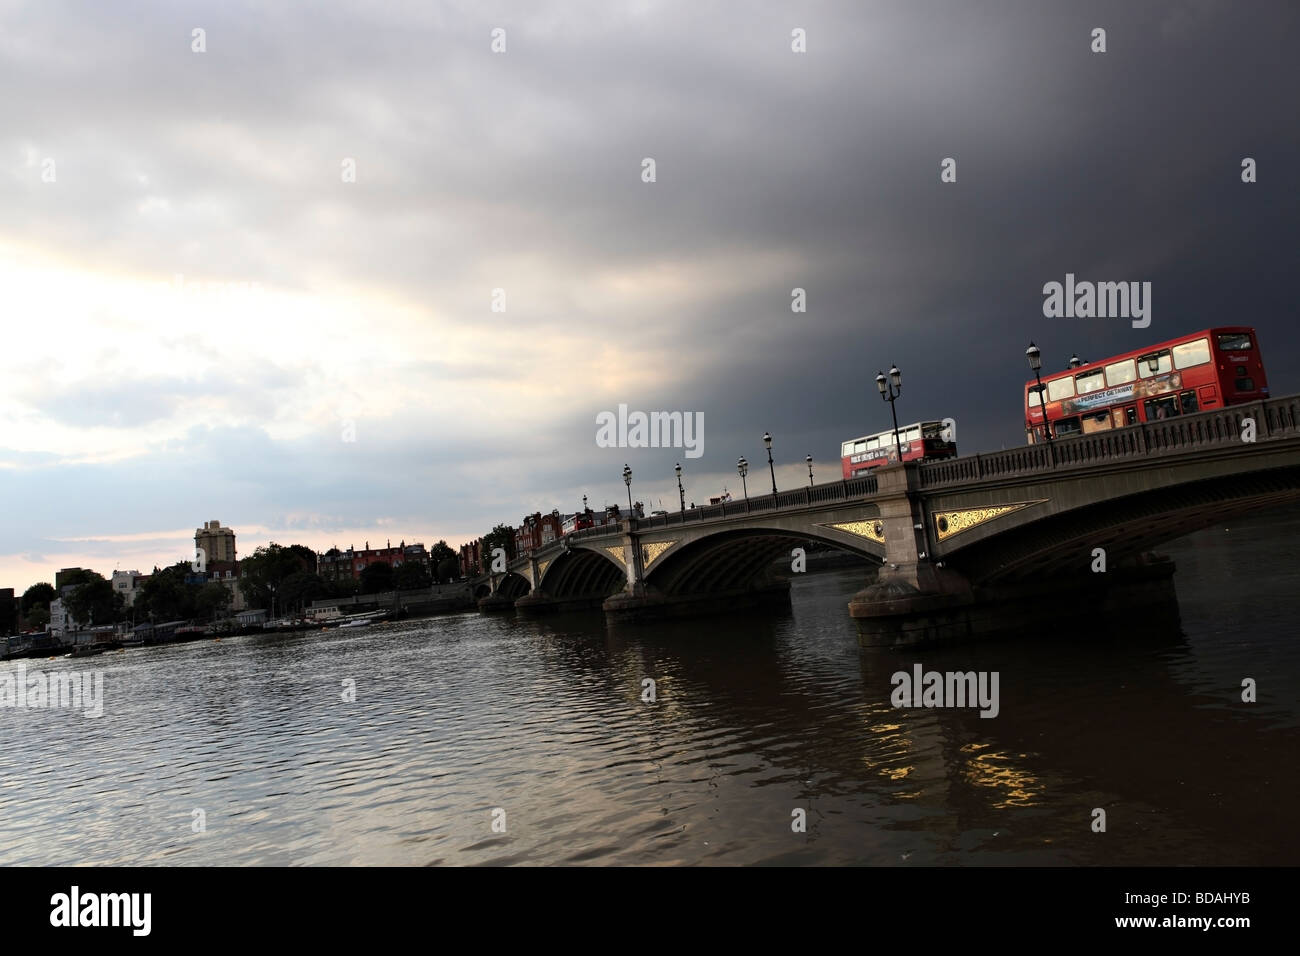 Battersea Bridge photographed during sunset just before a summer storm. - Stock Image